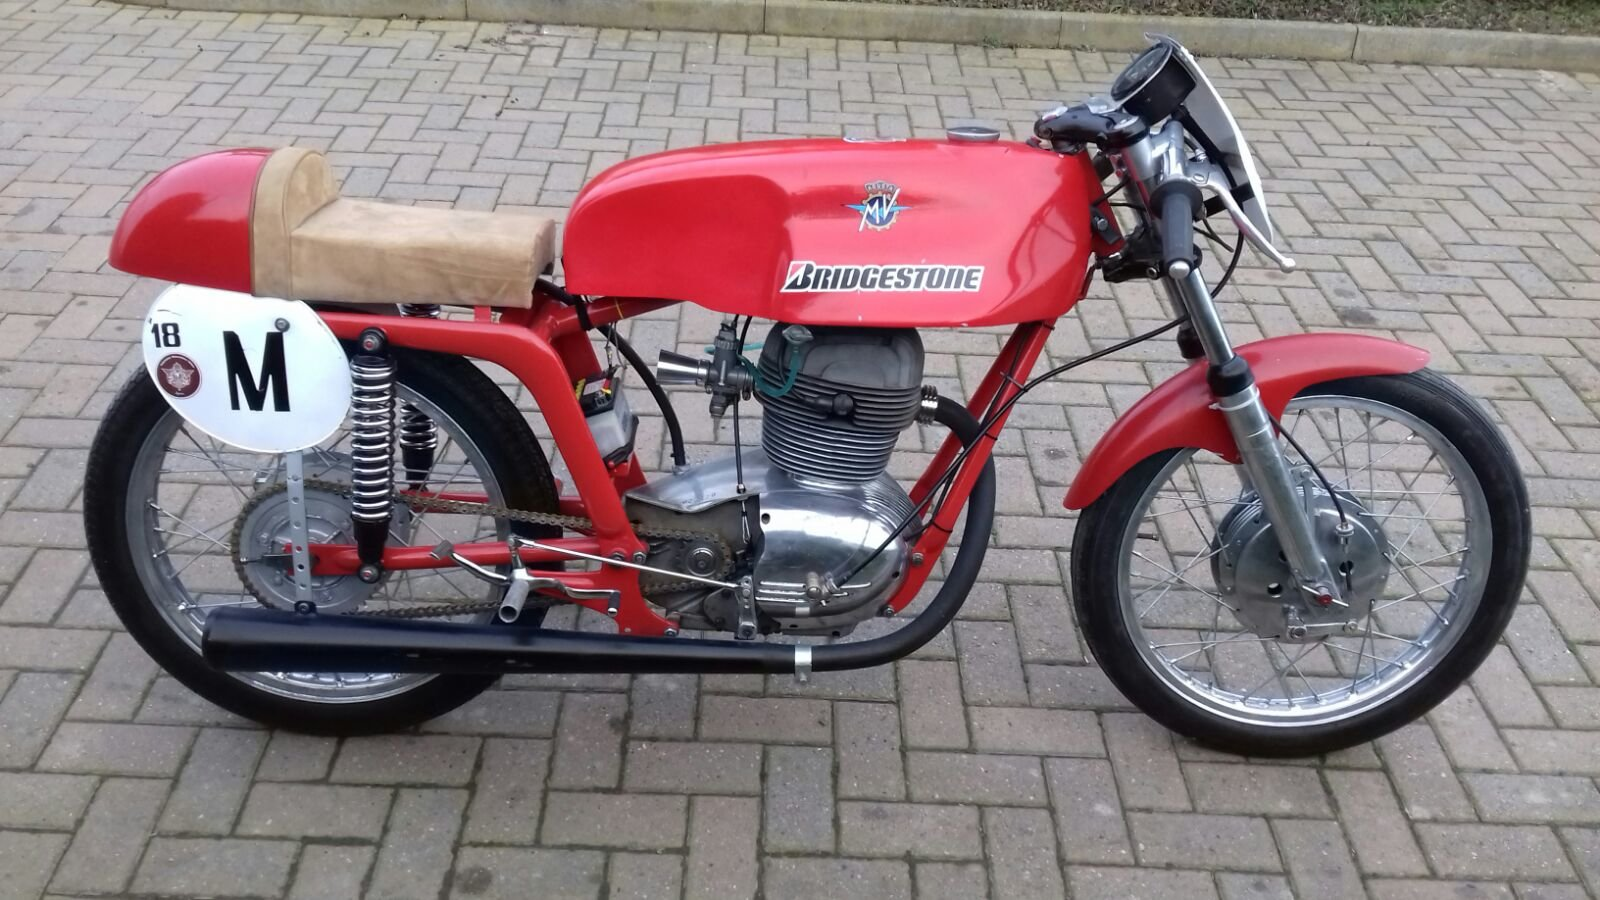 1954 Mv Agusta 175cc Cafe' Race  For Sale (picture 1 of 6)